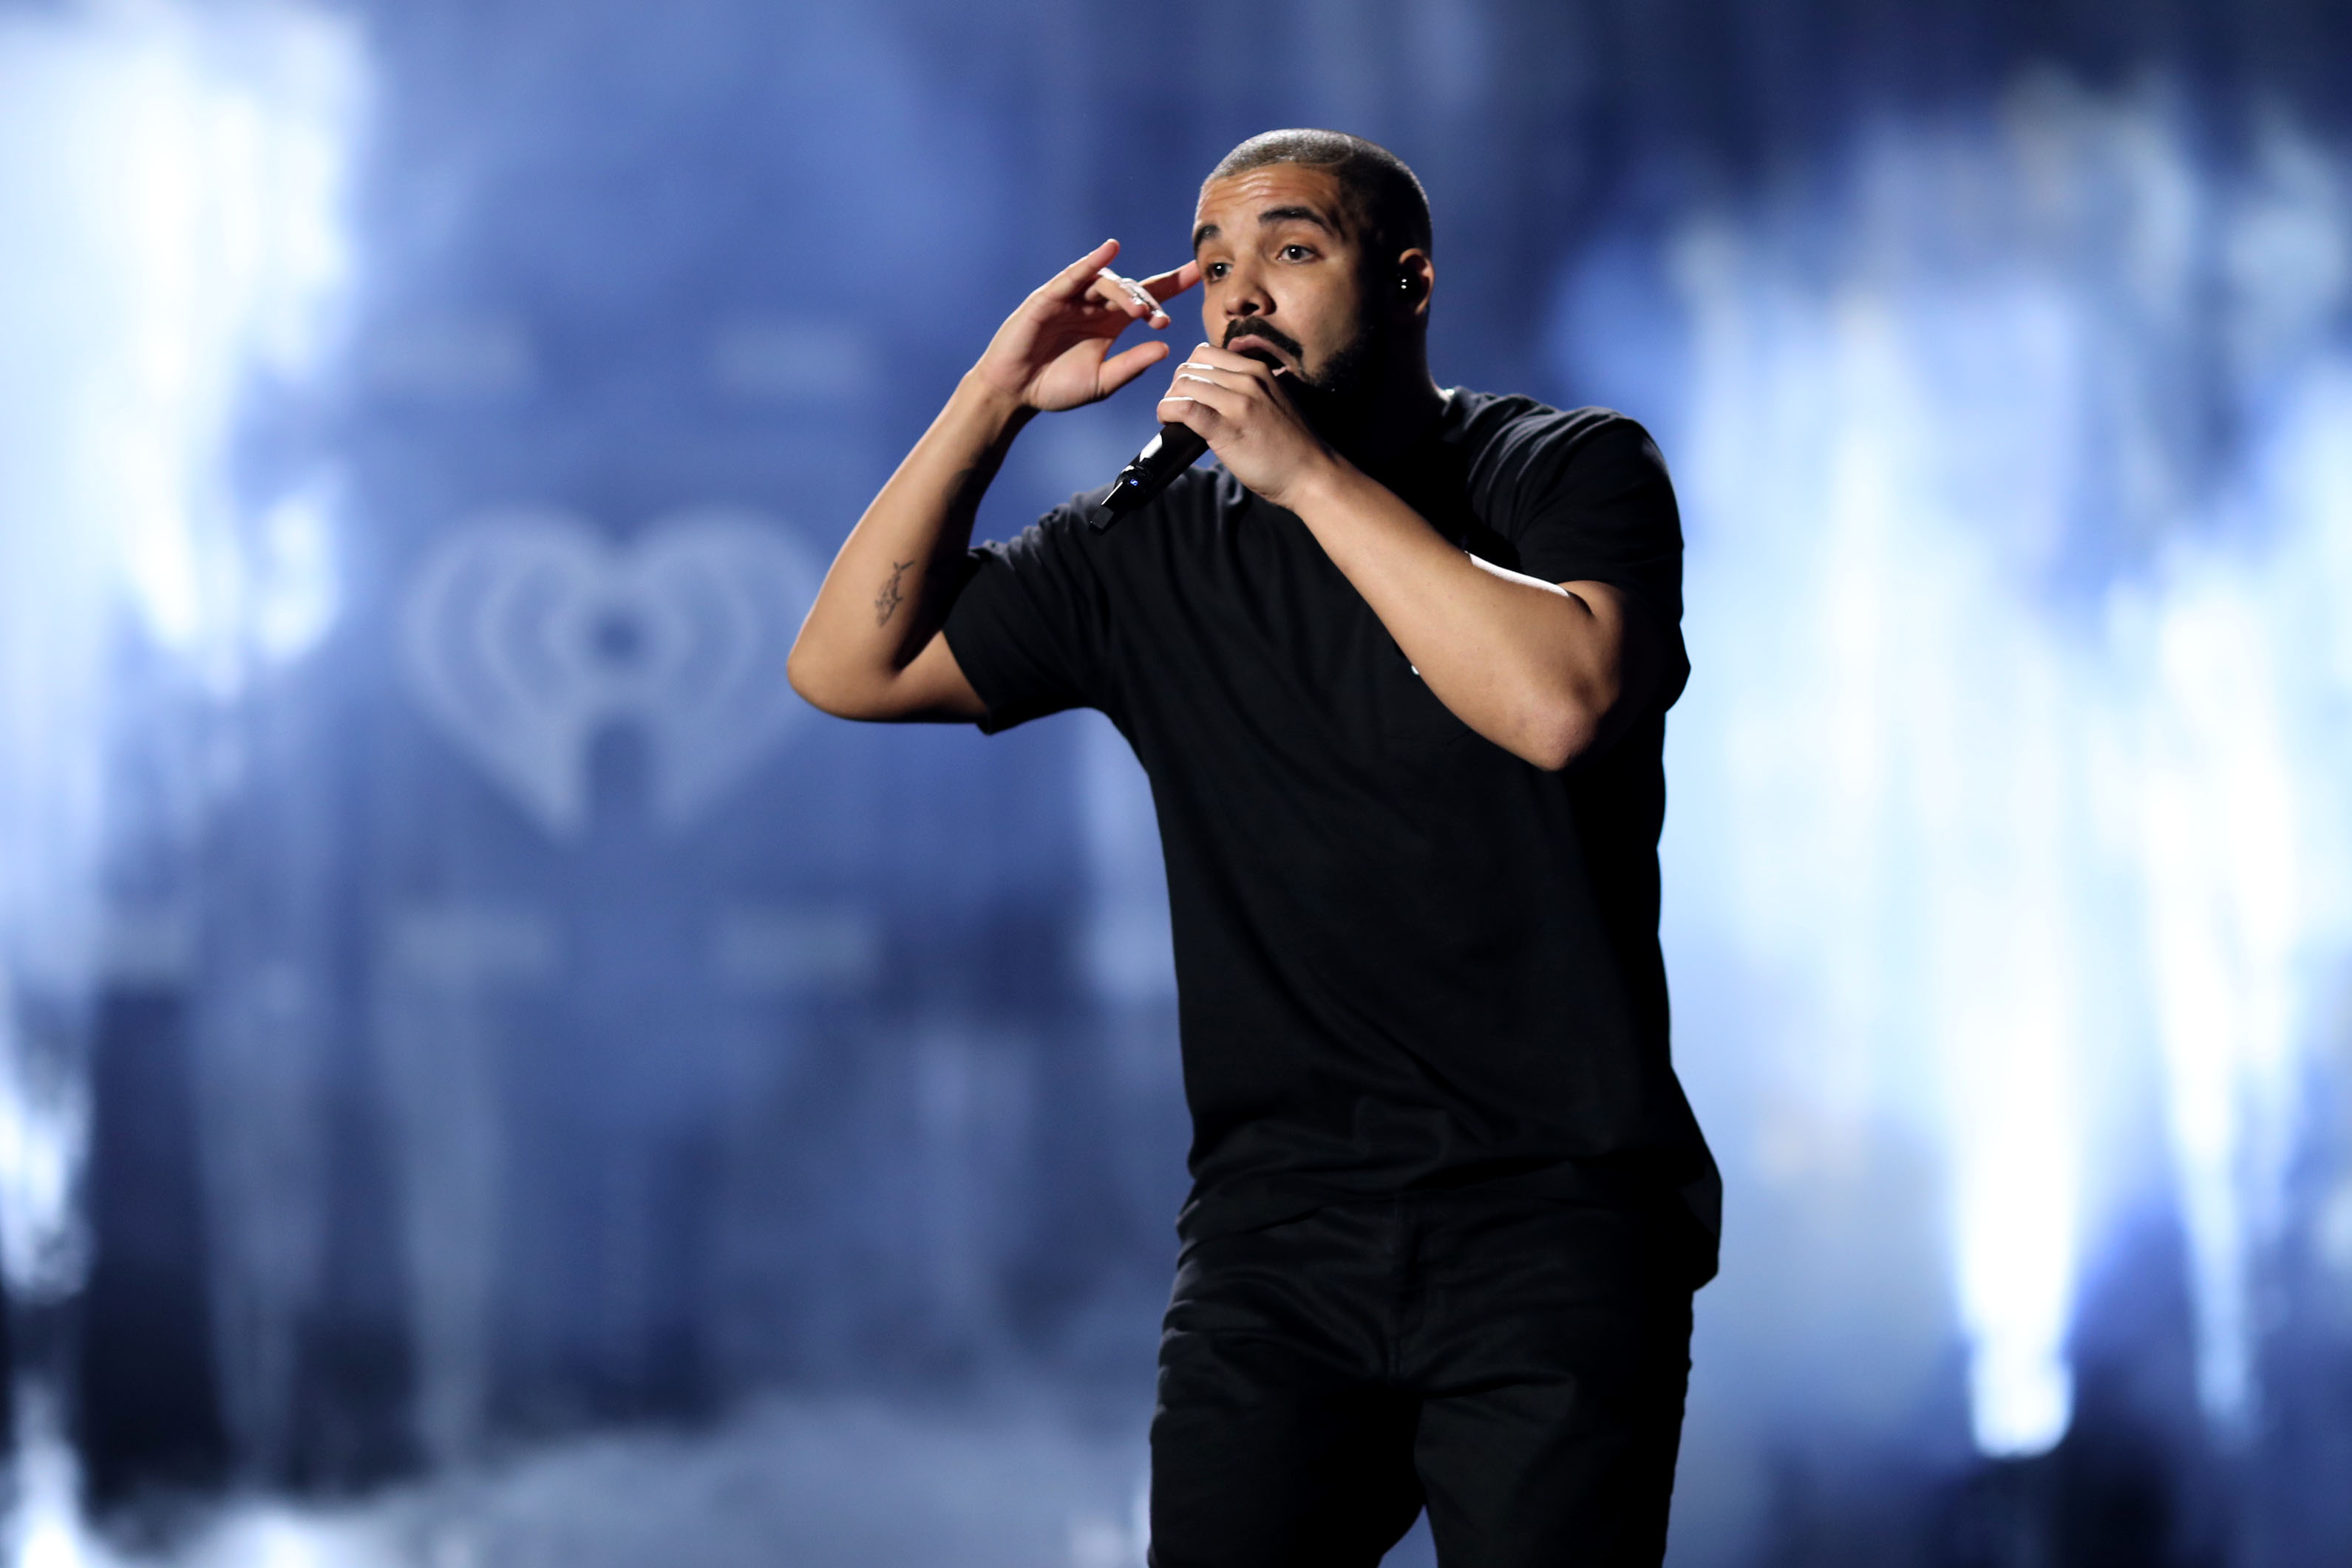 Drake performs at the iHeartRadio Music Festival on September 23, 2016 in Las Vegas, Nevada. (Photo by Christopher Polk/Getty Images)